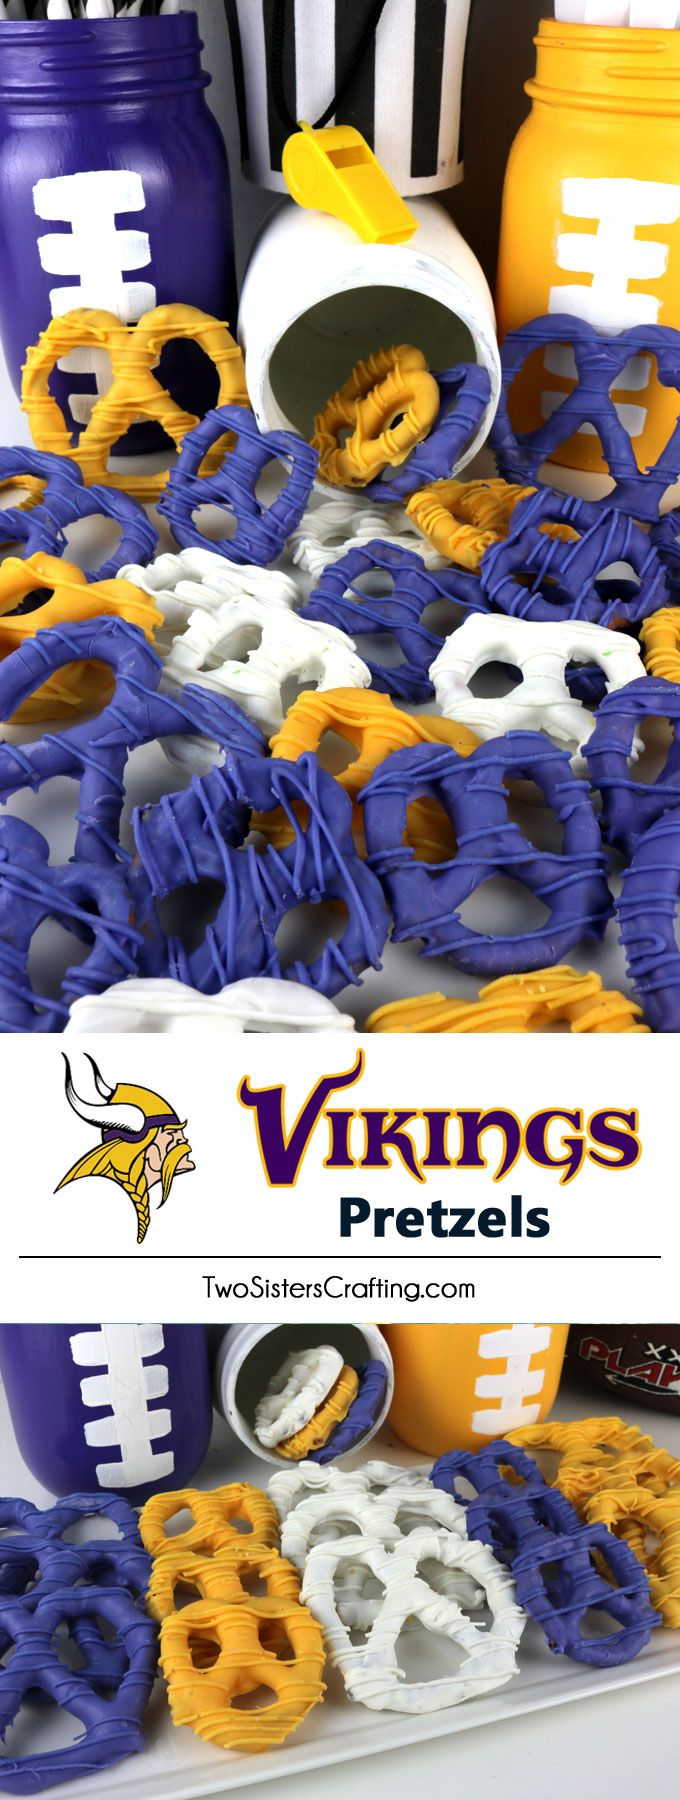 Minnesota Vikings Pretzels - yummy bites of sweet and salty Football Game Day goodness that are super easy to make. They are perfect as a little extra treat at a NFL playoff party, a Super Bowl party or as a special dessert for the Minnesota Vikings fan in your life. Follow us for more fun Super Bowl Food Ideas. #MinnesotaVikings #Vikings #MinnesotaVikingsFood #superbowl #superbowlparty #superbowlfood  via @2SistersCraft